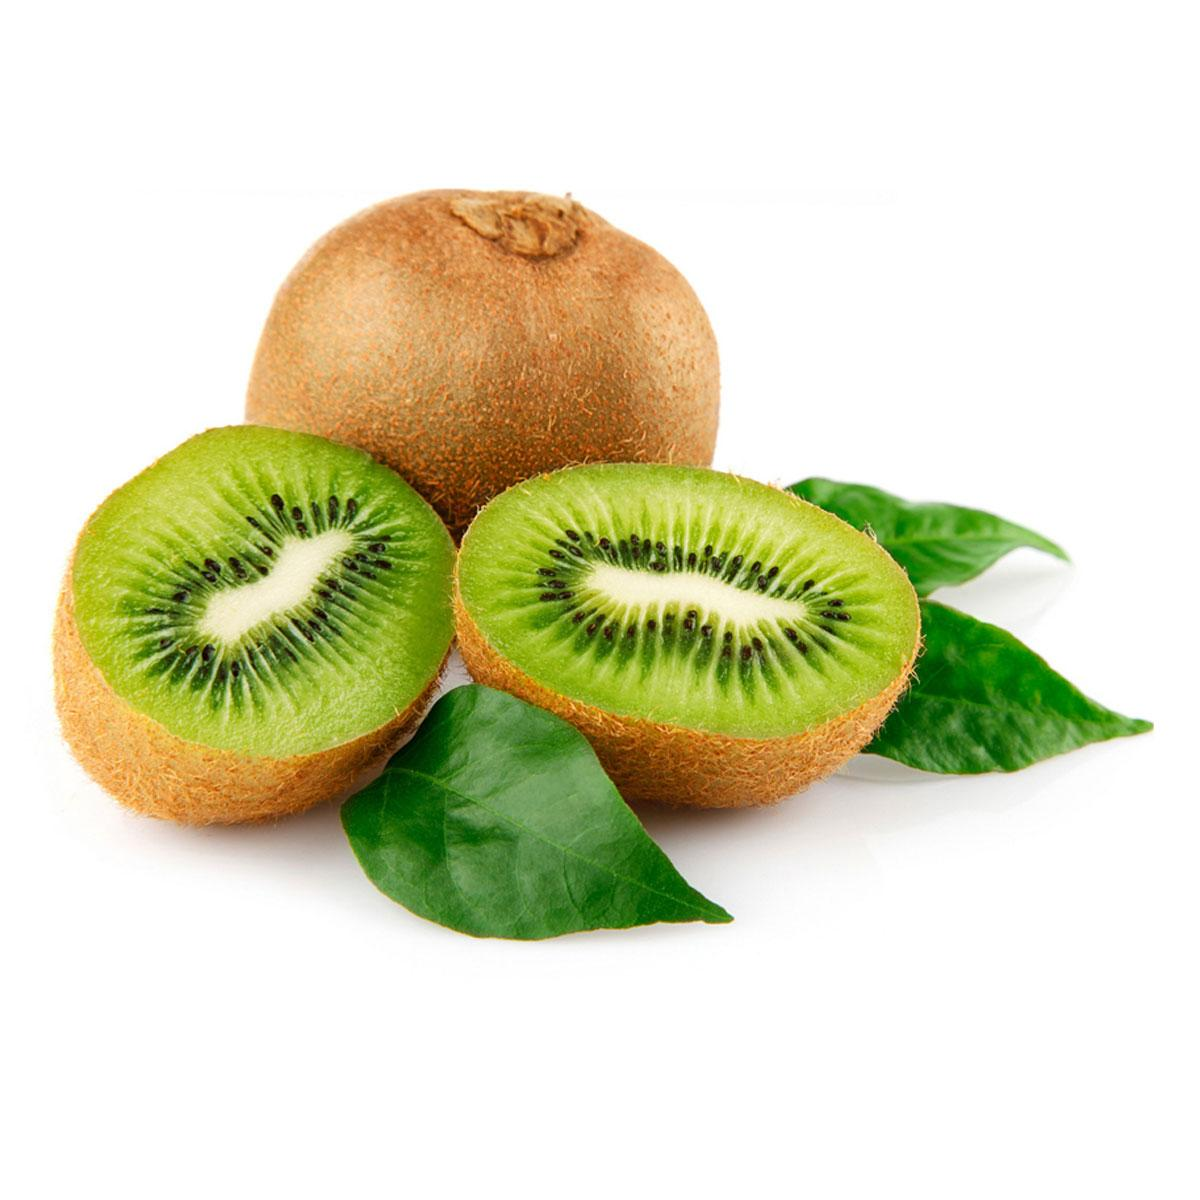 Kiwi Zespri New Zealand